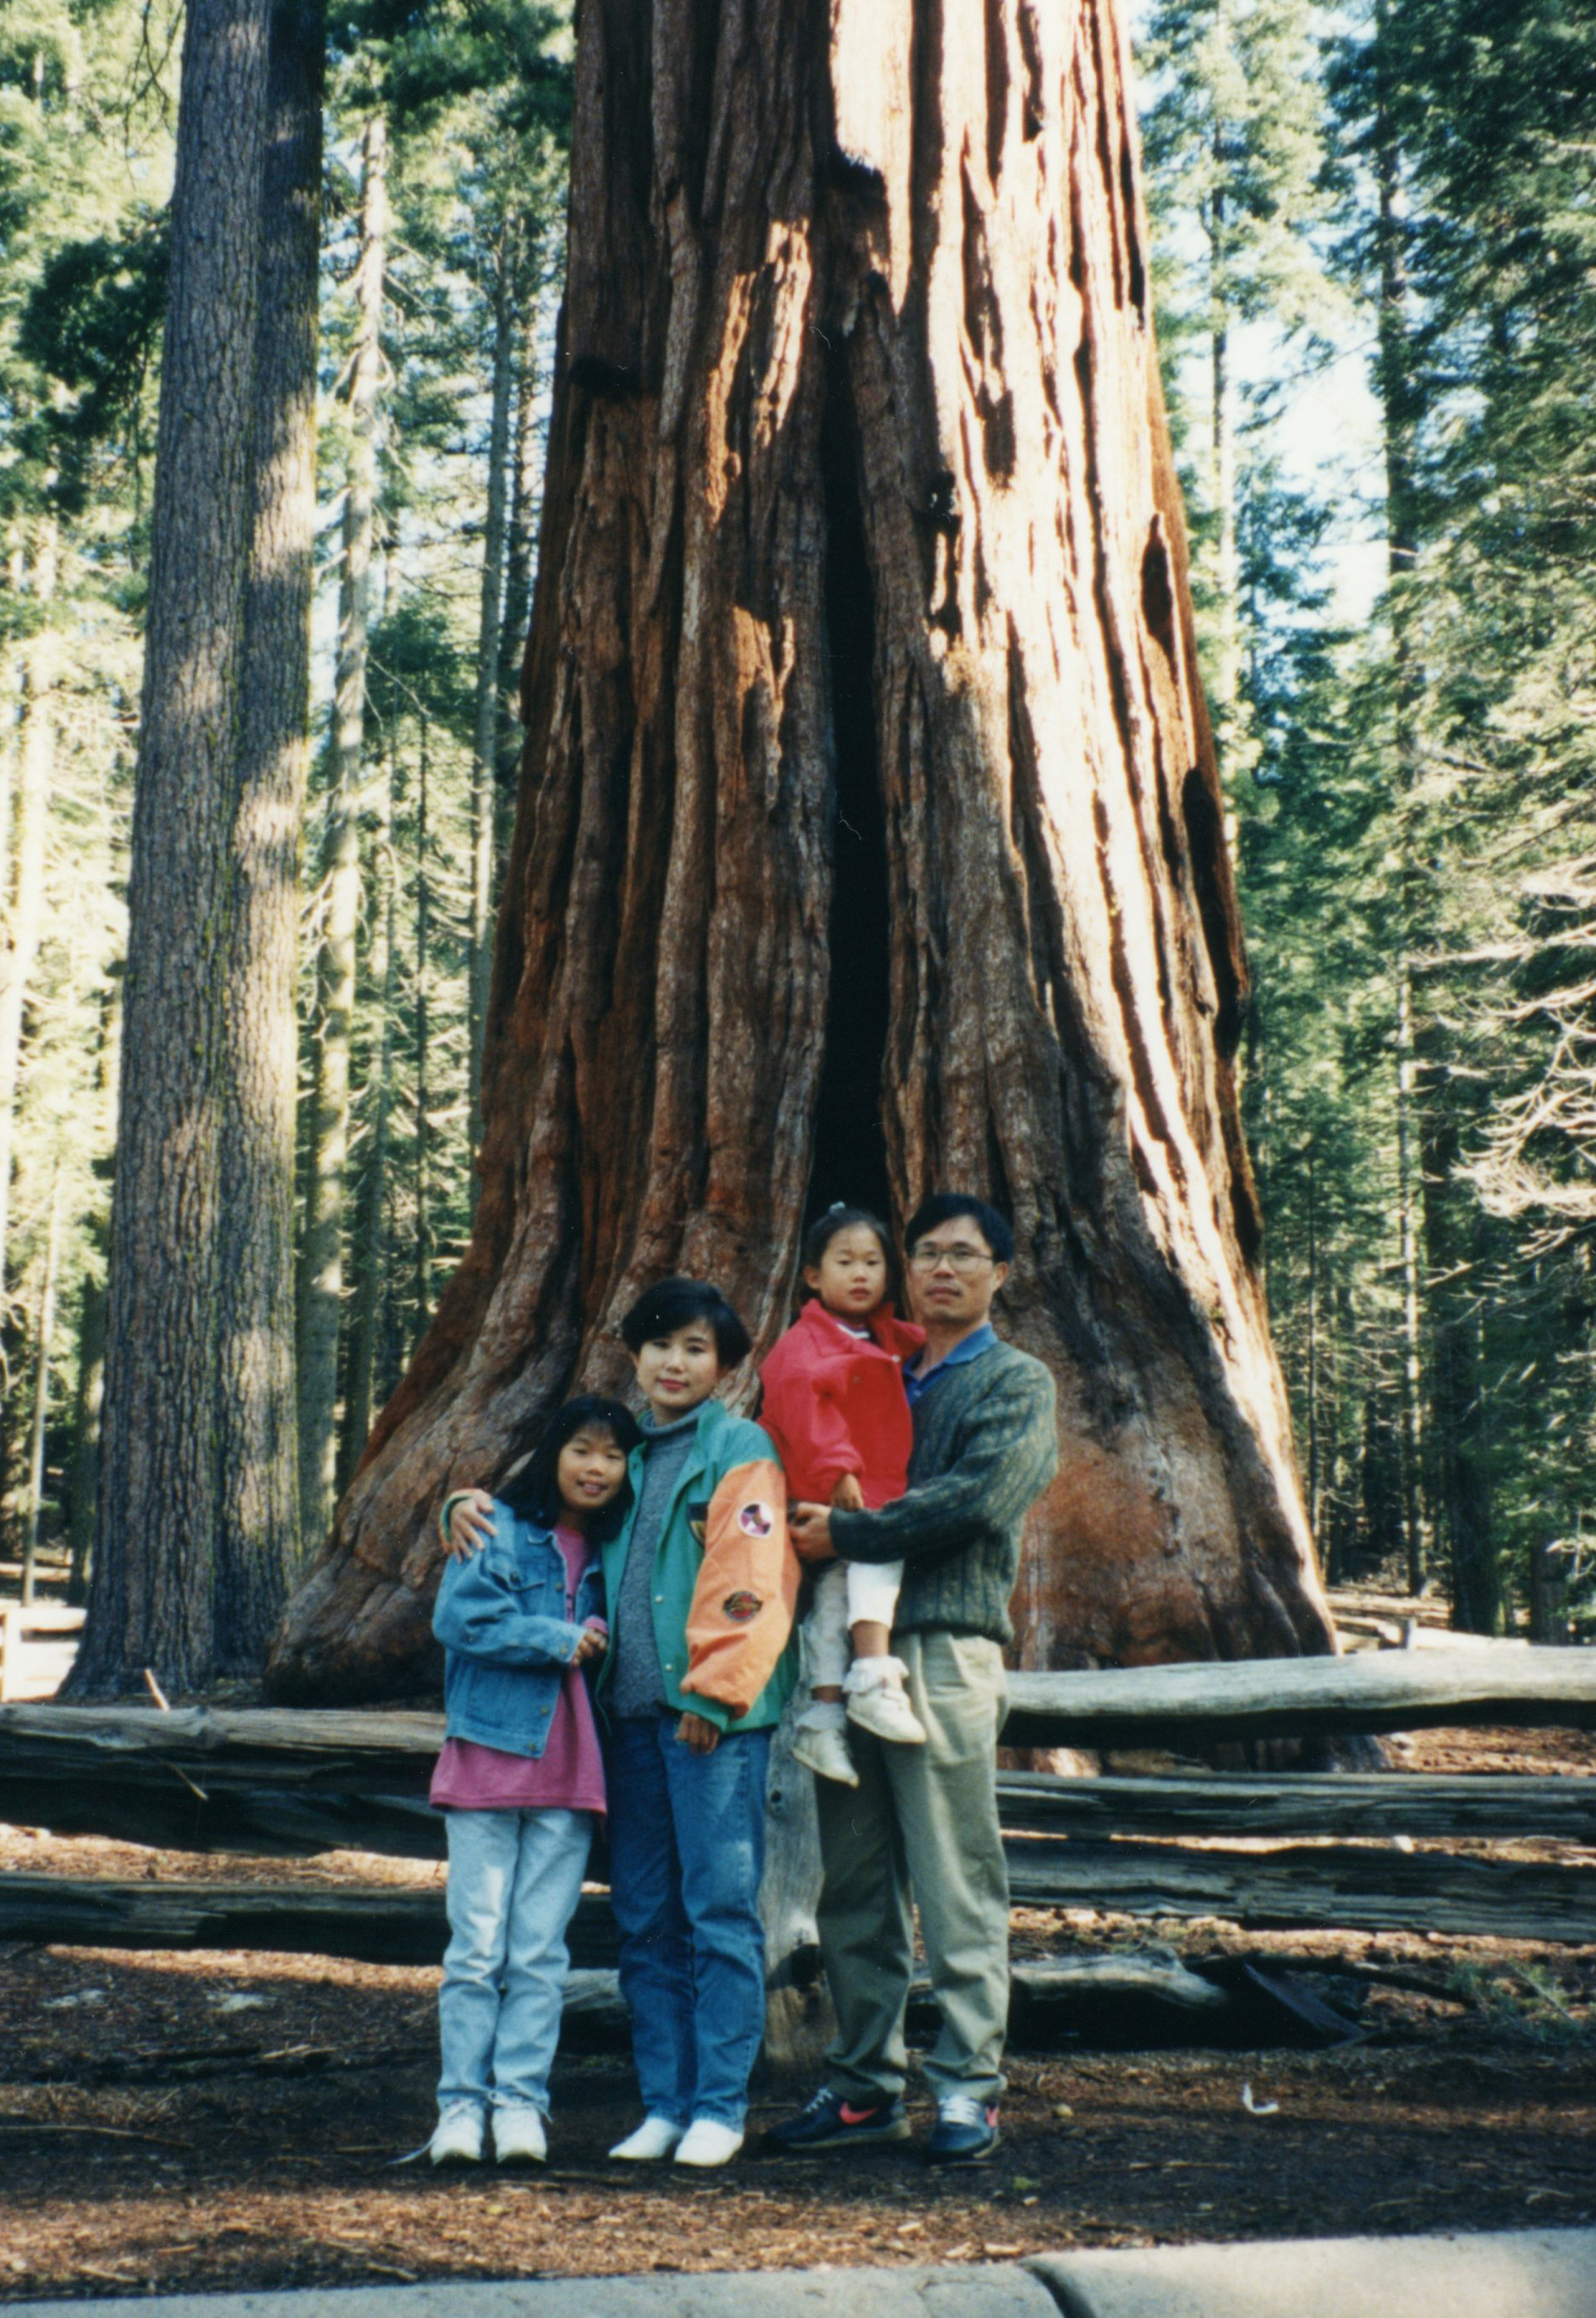 Sequoia National Park with my family